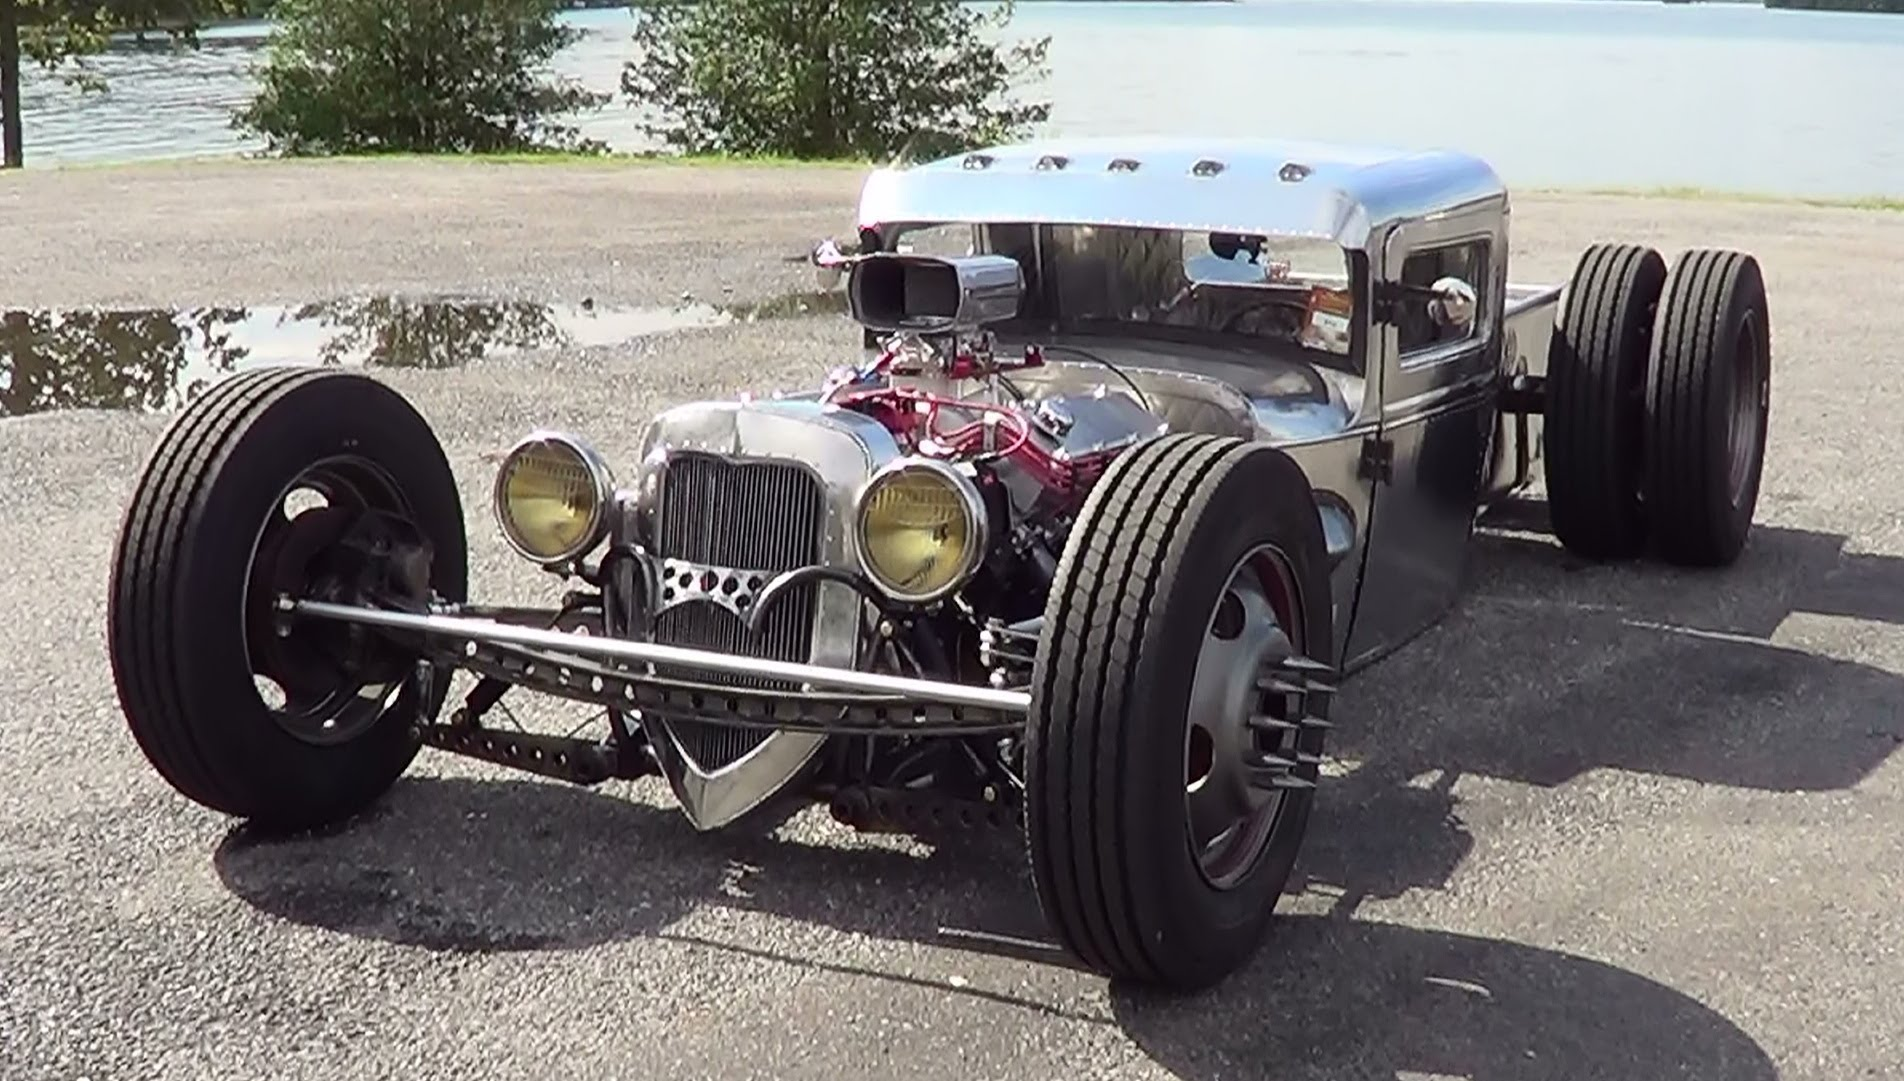 Check Out This Amazing Hand Built Hot Rod Executed By